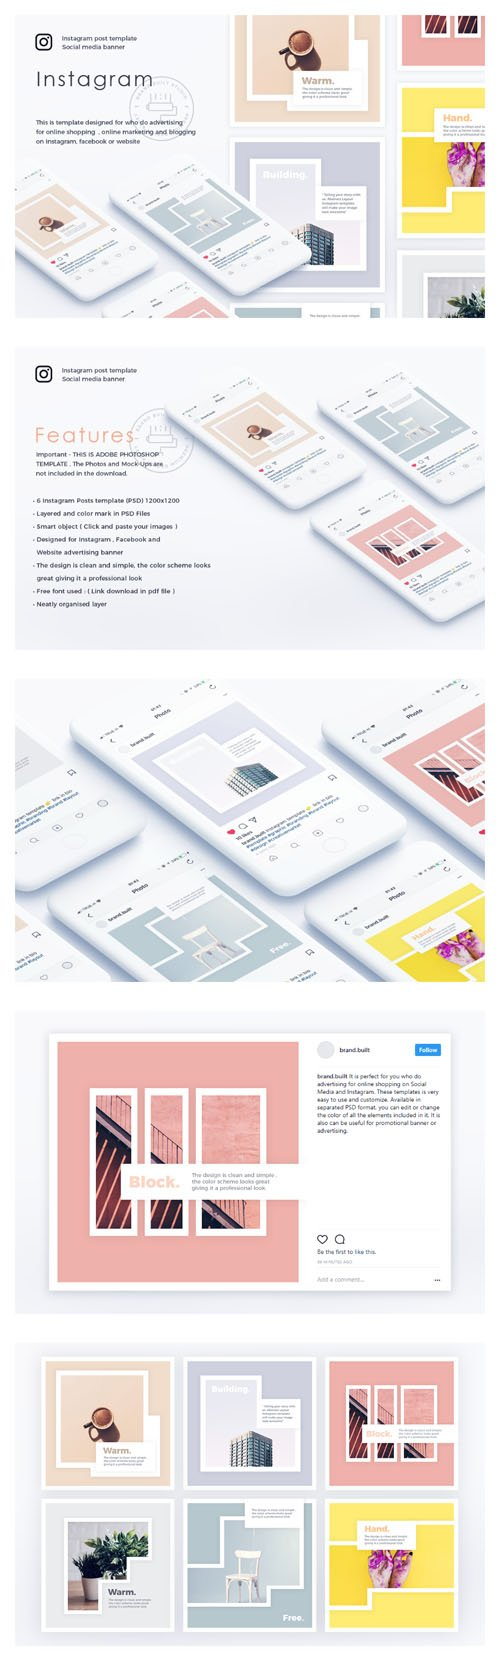 Abstract Instagram Layout PSD Templates